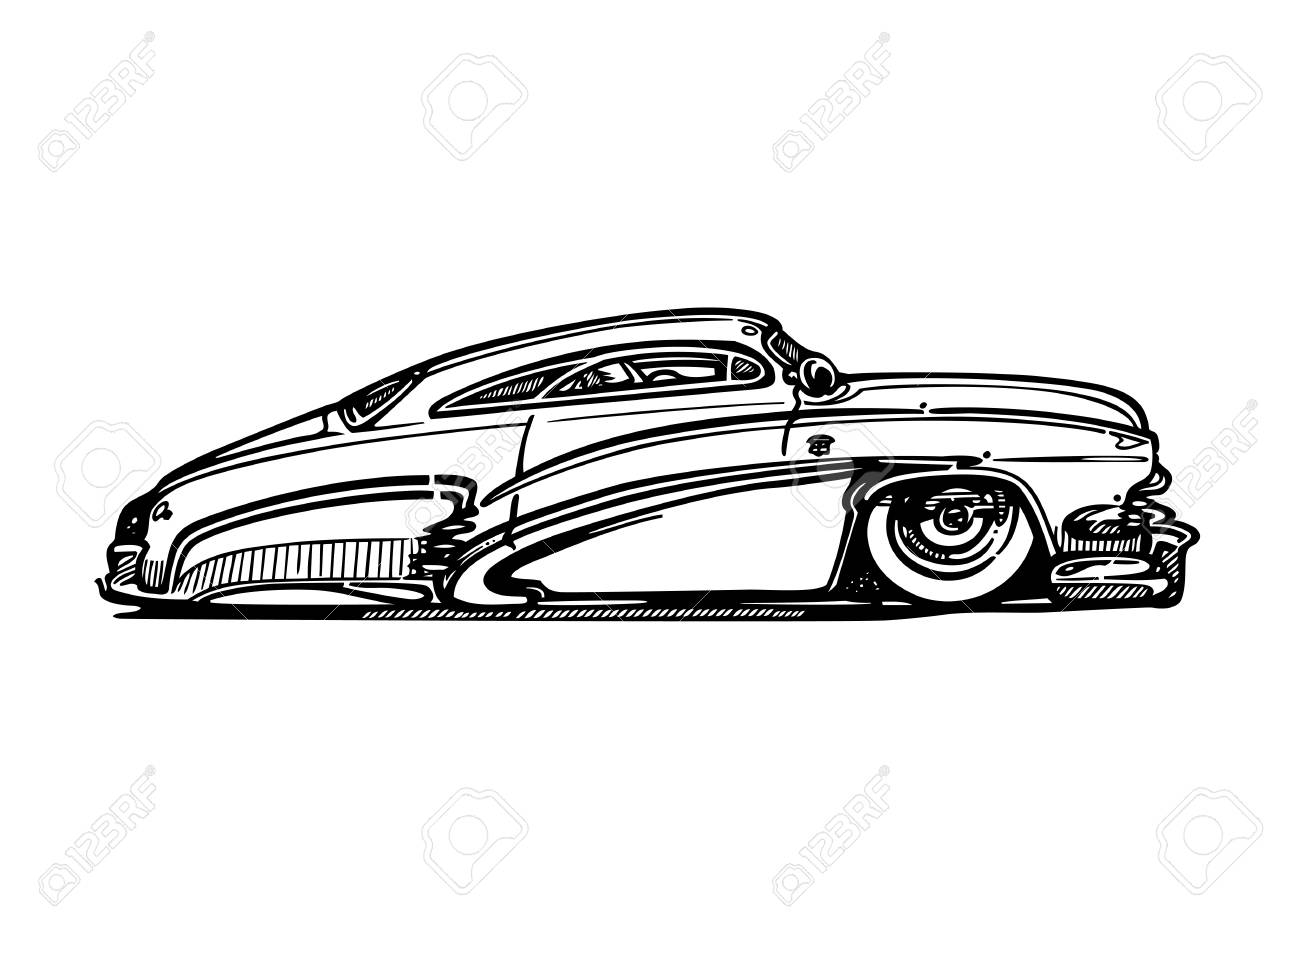 Vector Retro Hotrod Car Clipart Cartoon Illustration Royalty Free Cliparts Vectors And Stock Illustration Image 81062635